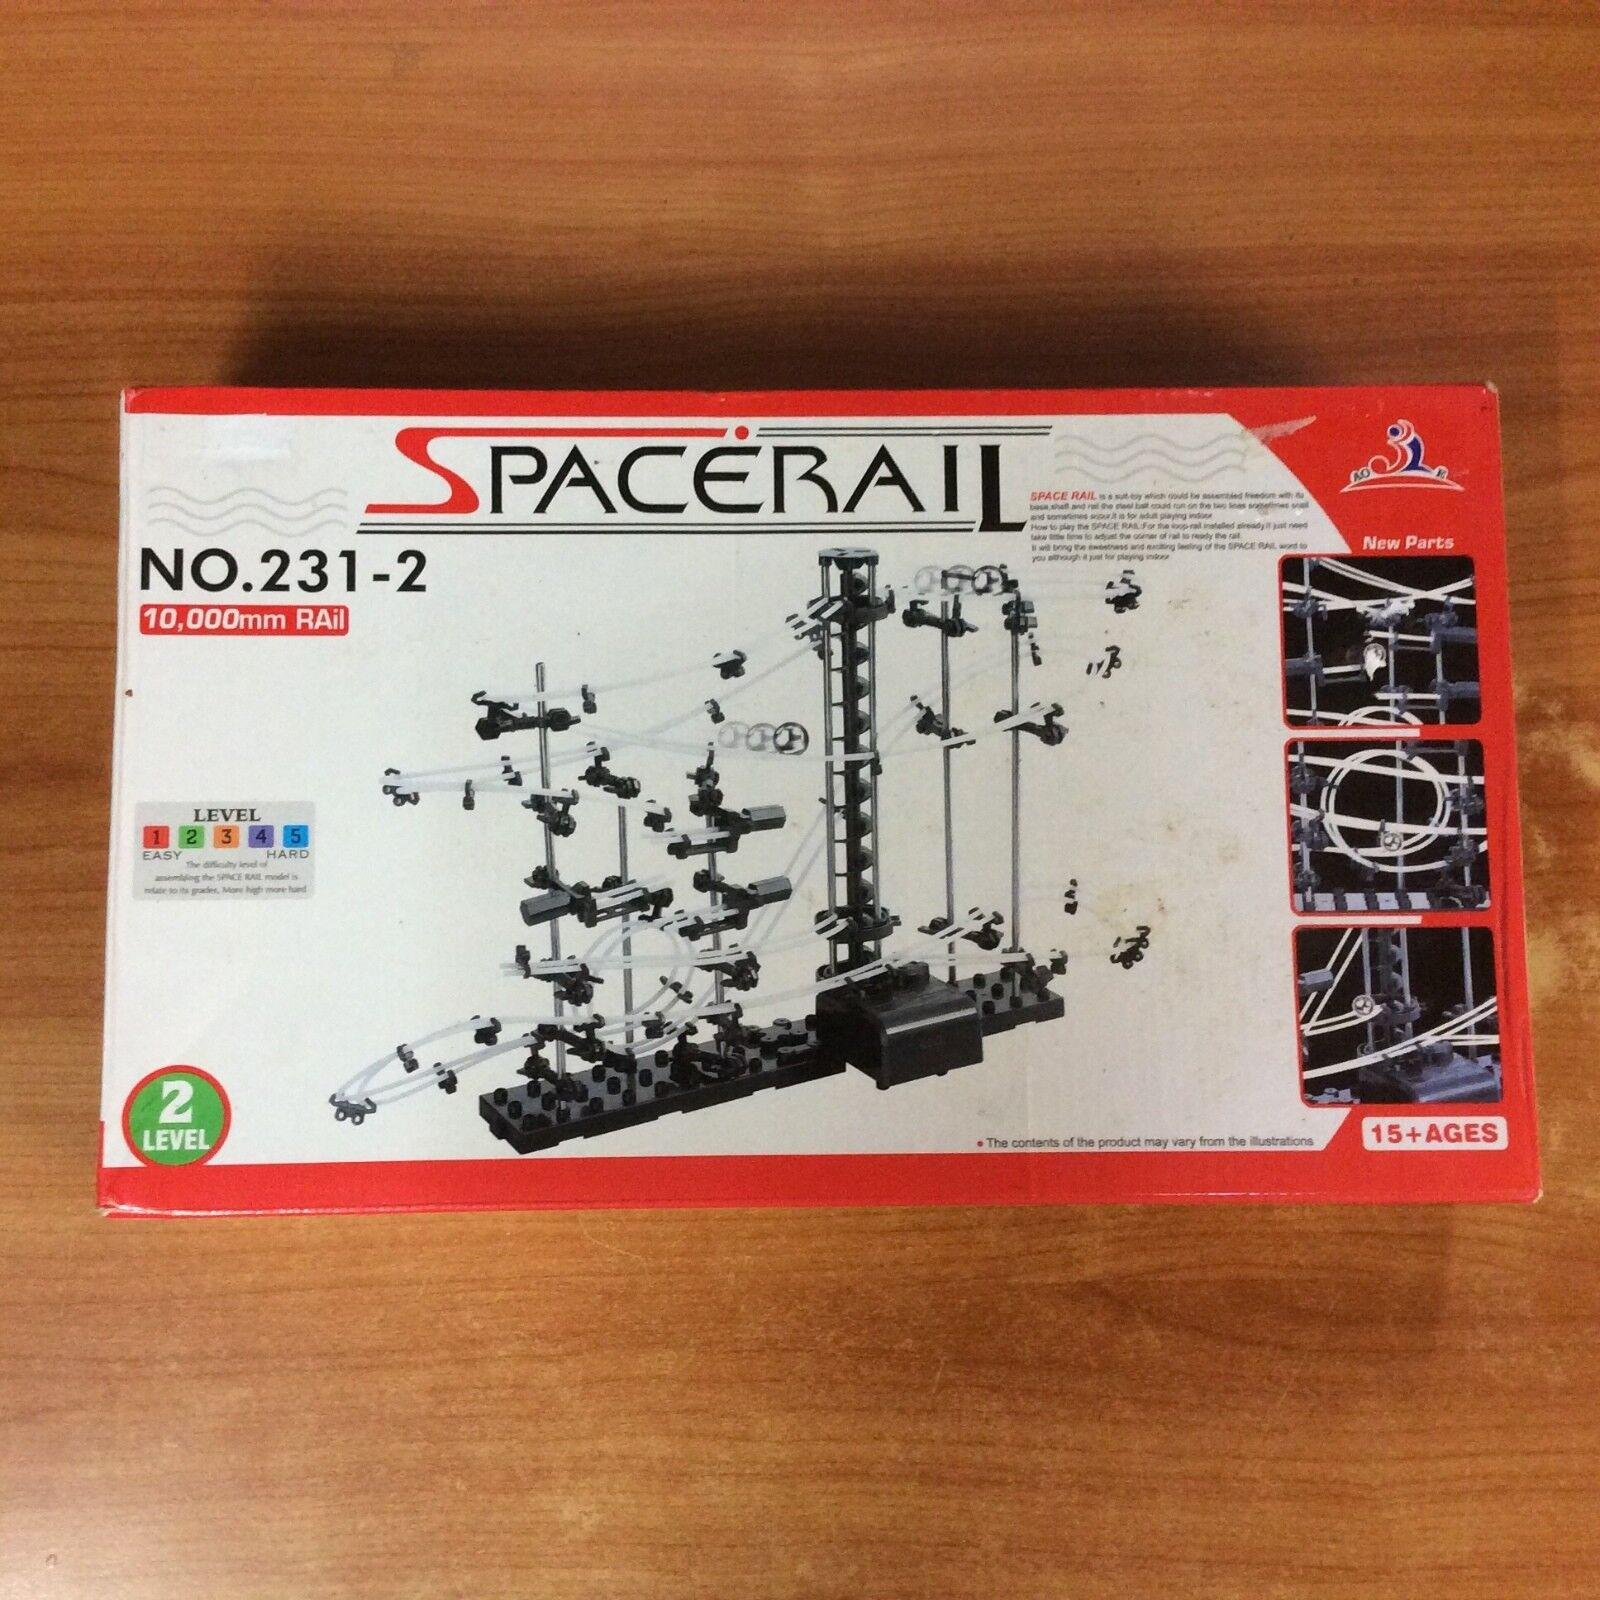 2-Level Space Rail Spiral Lift Roller Coaster Electric Assemble Model